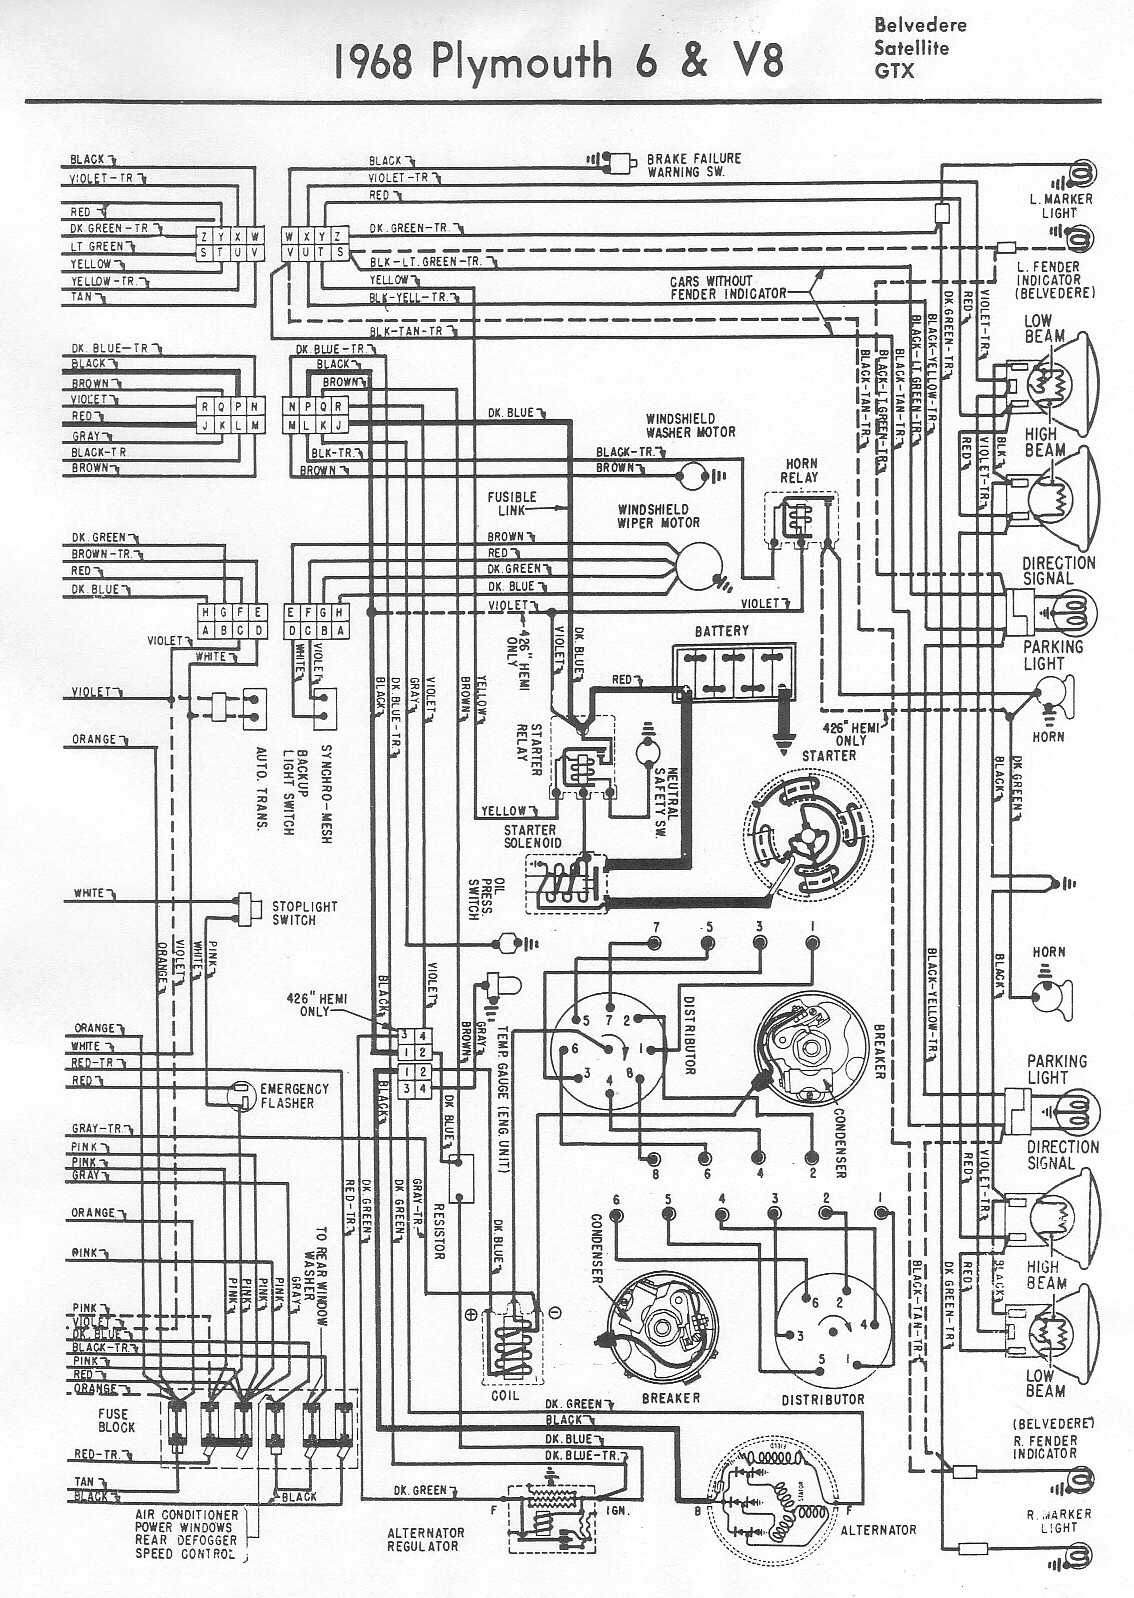 1969 Gtx Wiring Diagram Most Searched Right Now 70 Chevelle Road Runner Free Download Schematic 1967 1968